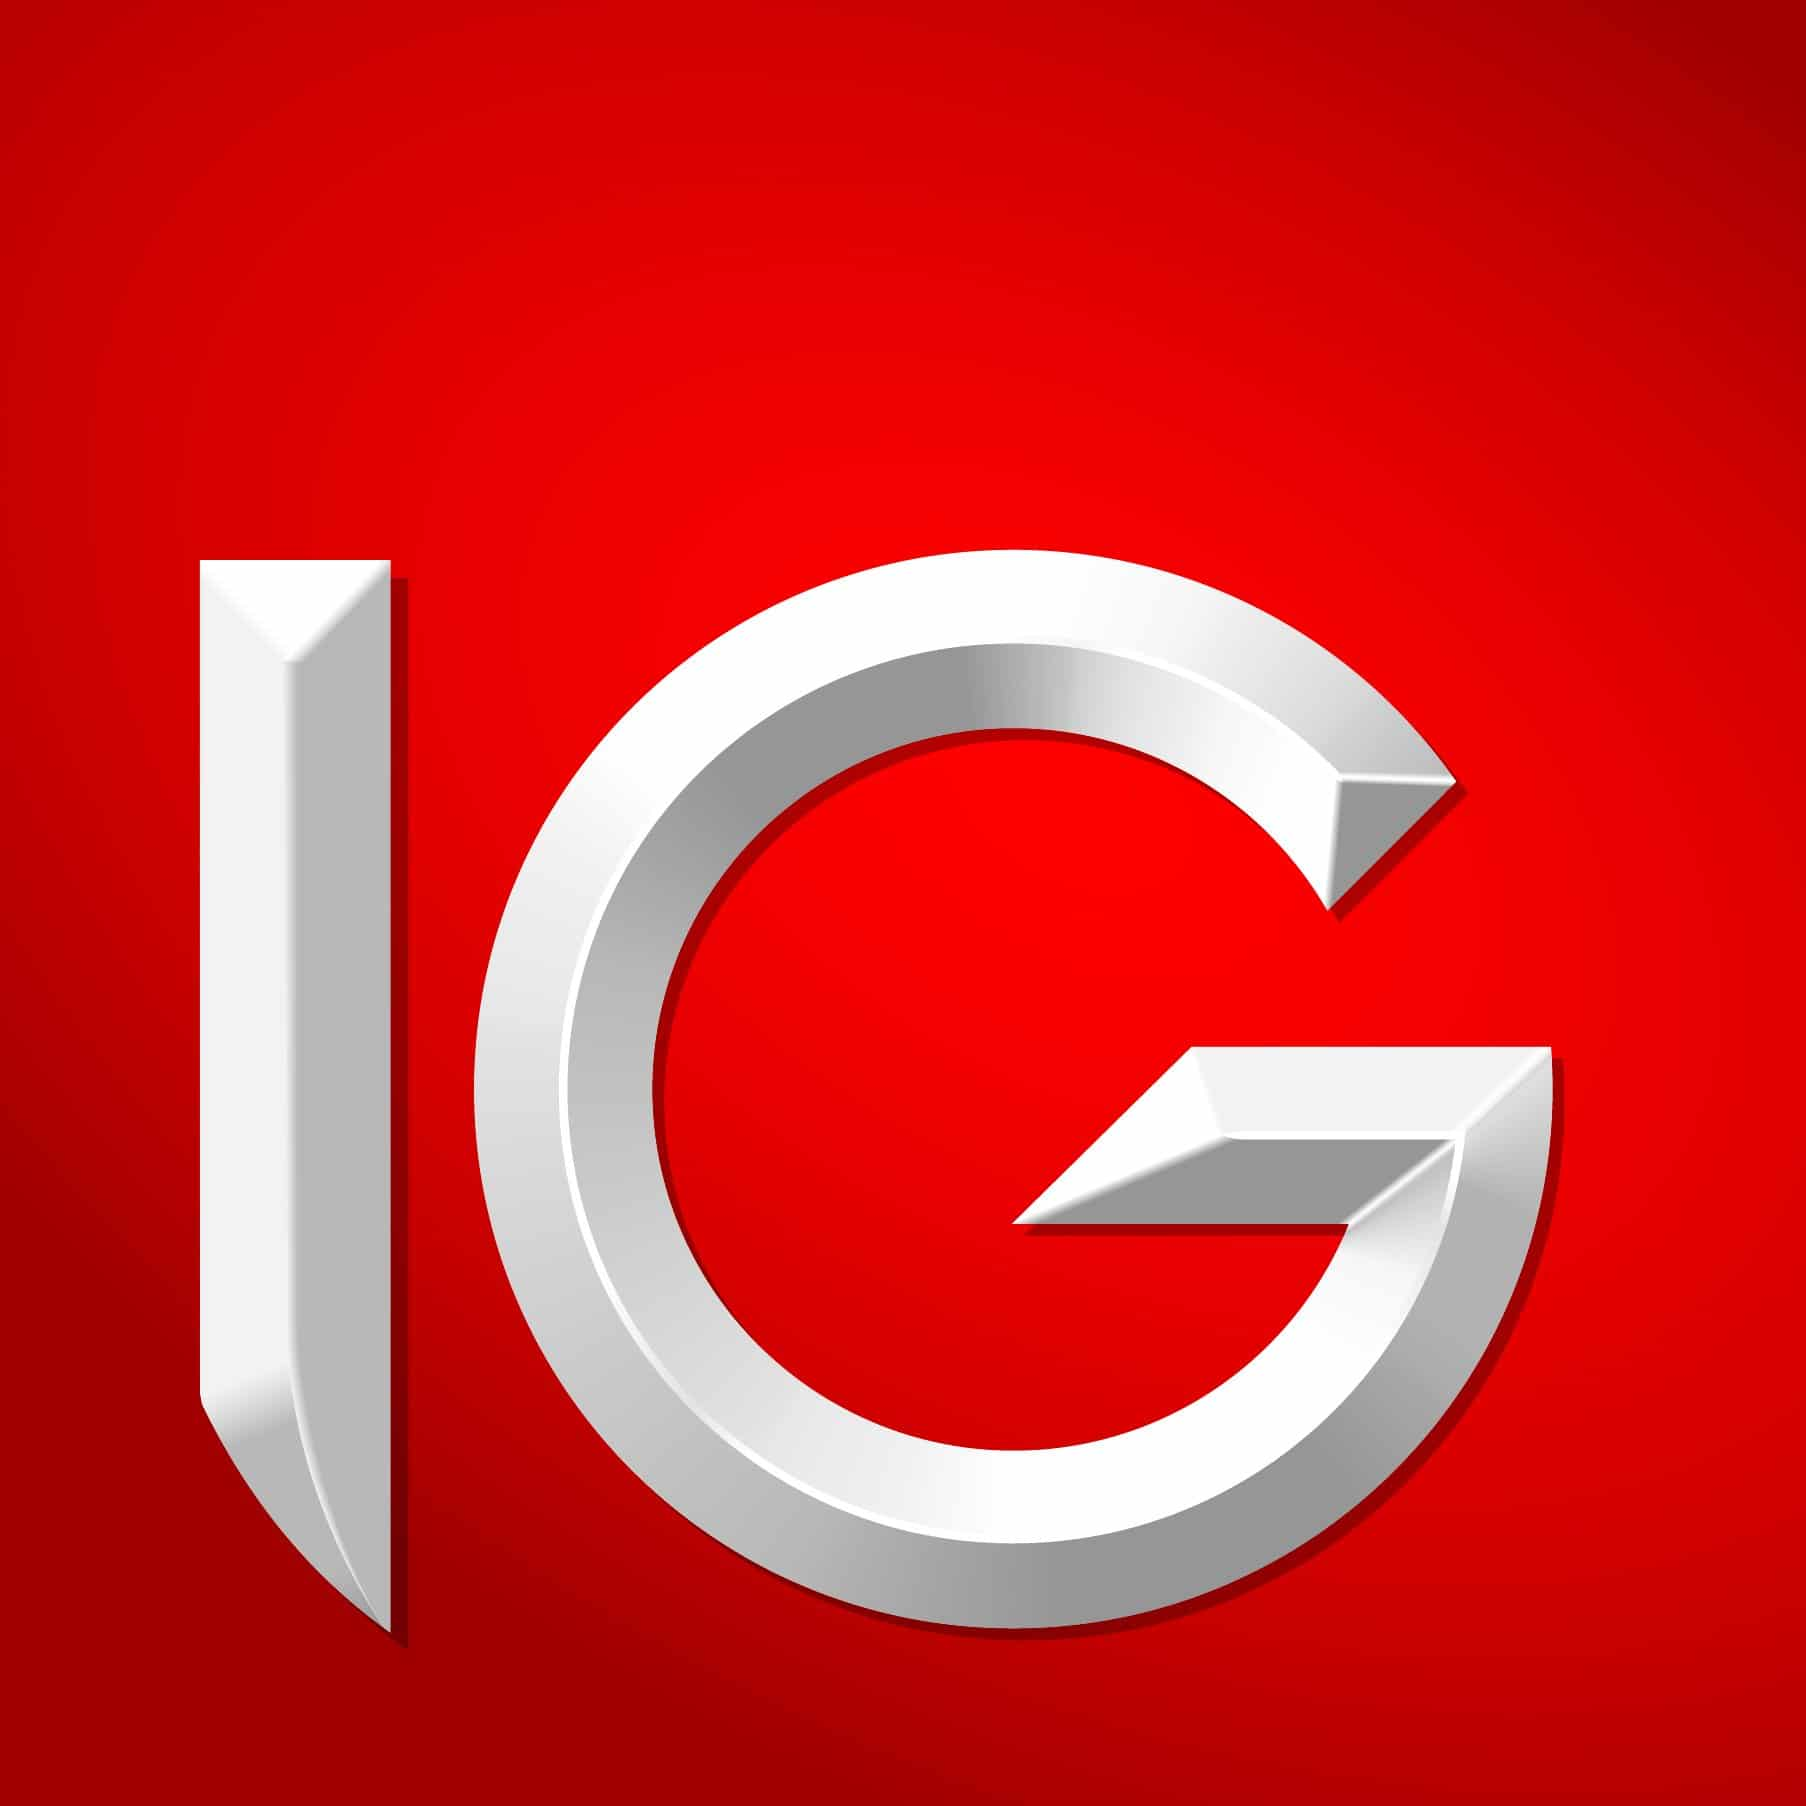 IG Group Plans Major Changes; US Division May Find New Direction